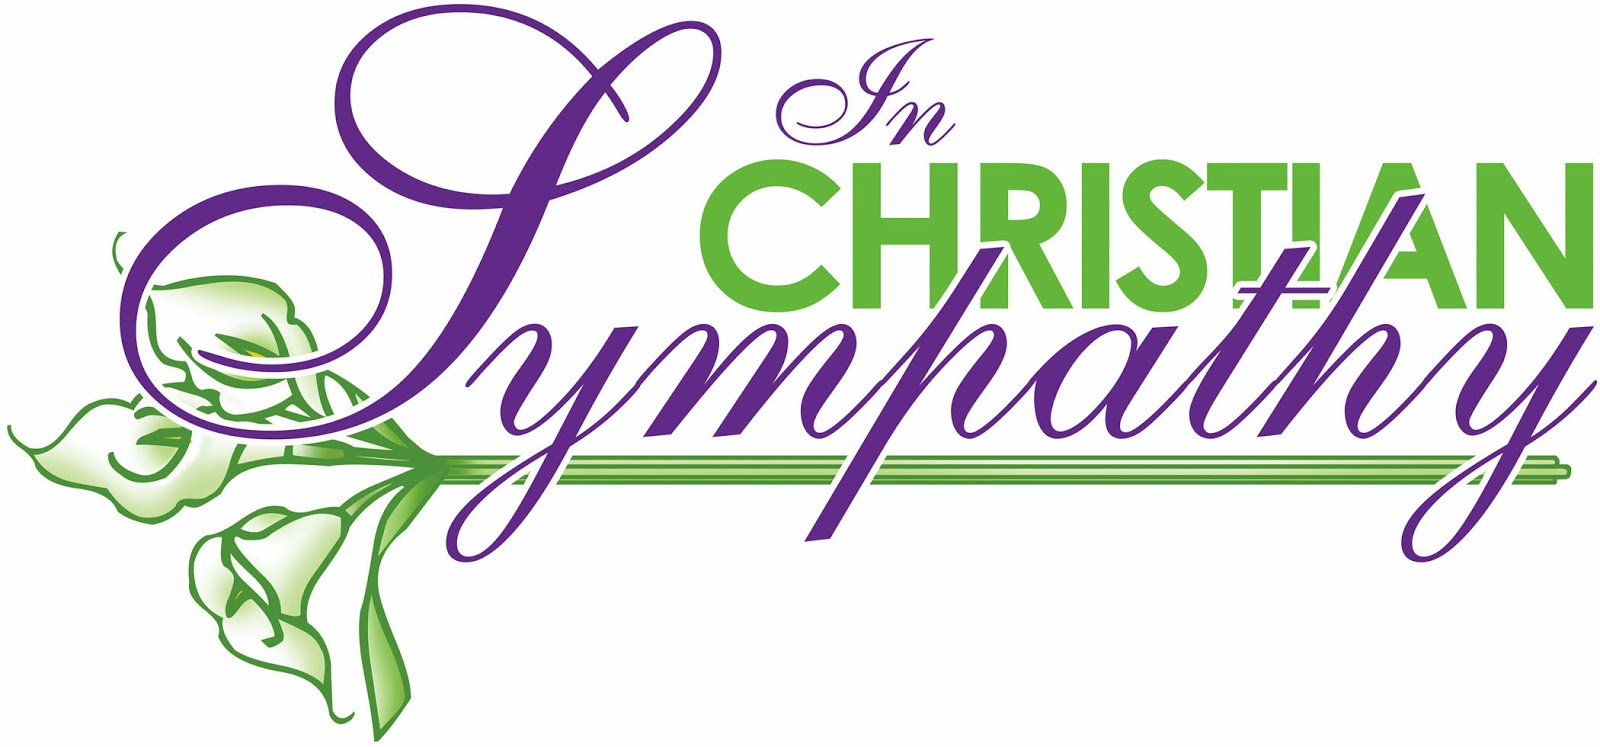 sympathy clipart at getdrawings com free for personal use sympathy rh getdrawings com sympathy clip art borders sympathy clip art religious